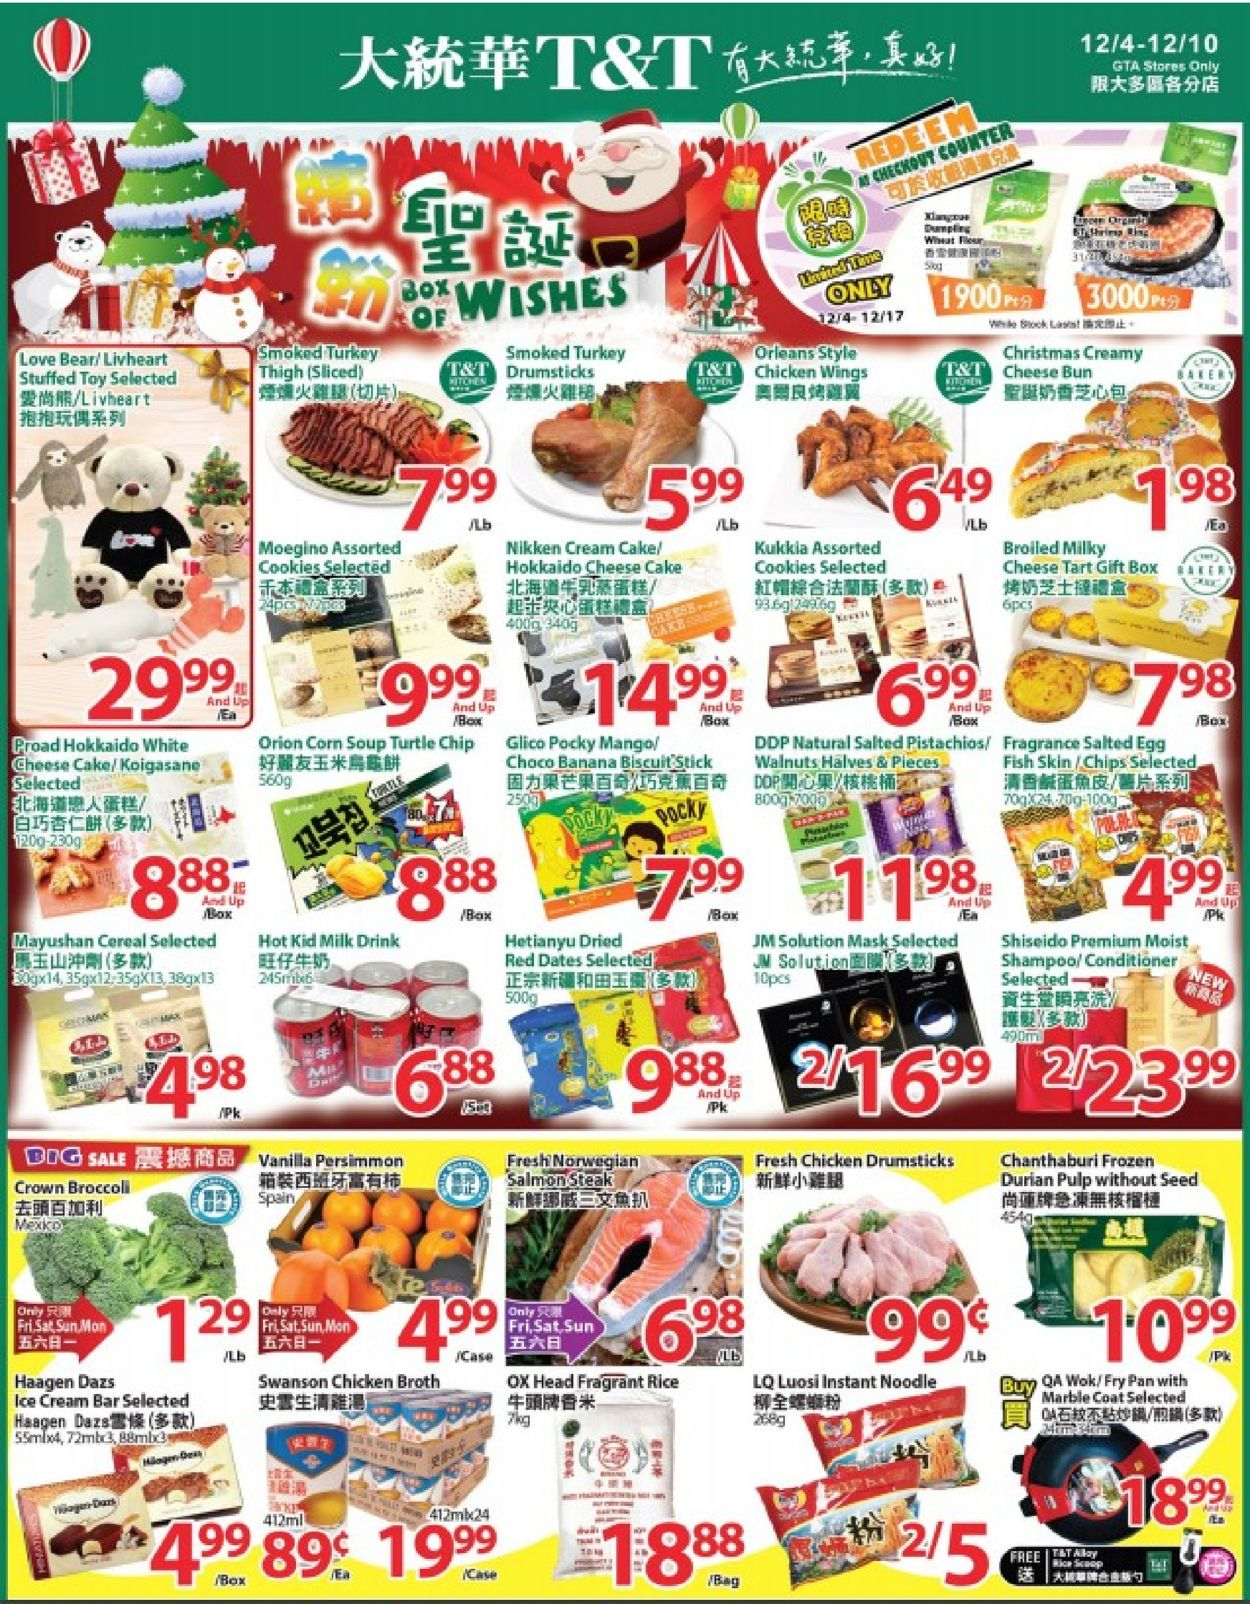 T&T Supermarket - Greater Toronto Area Flyer - 12/04-12/10/2020